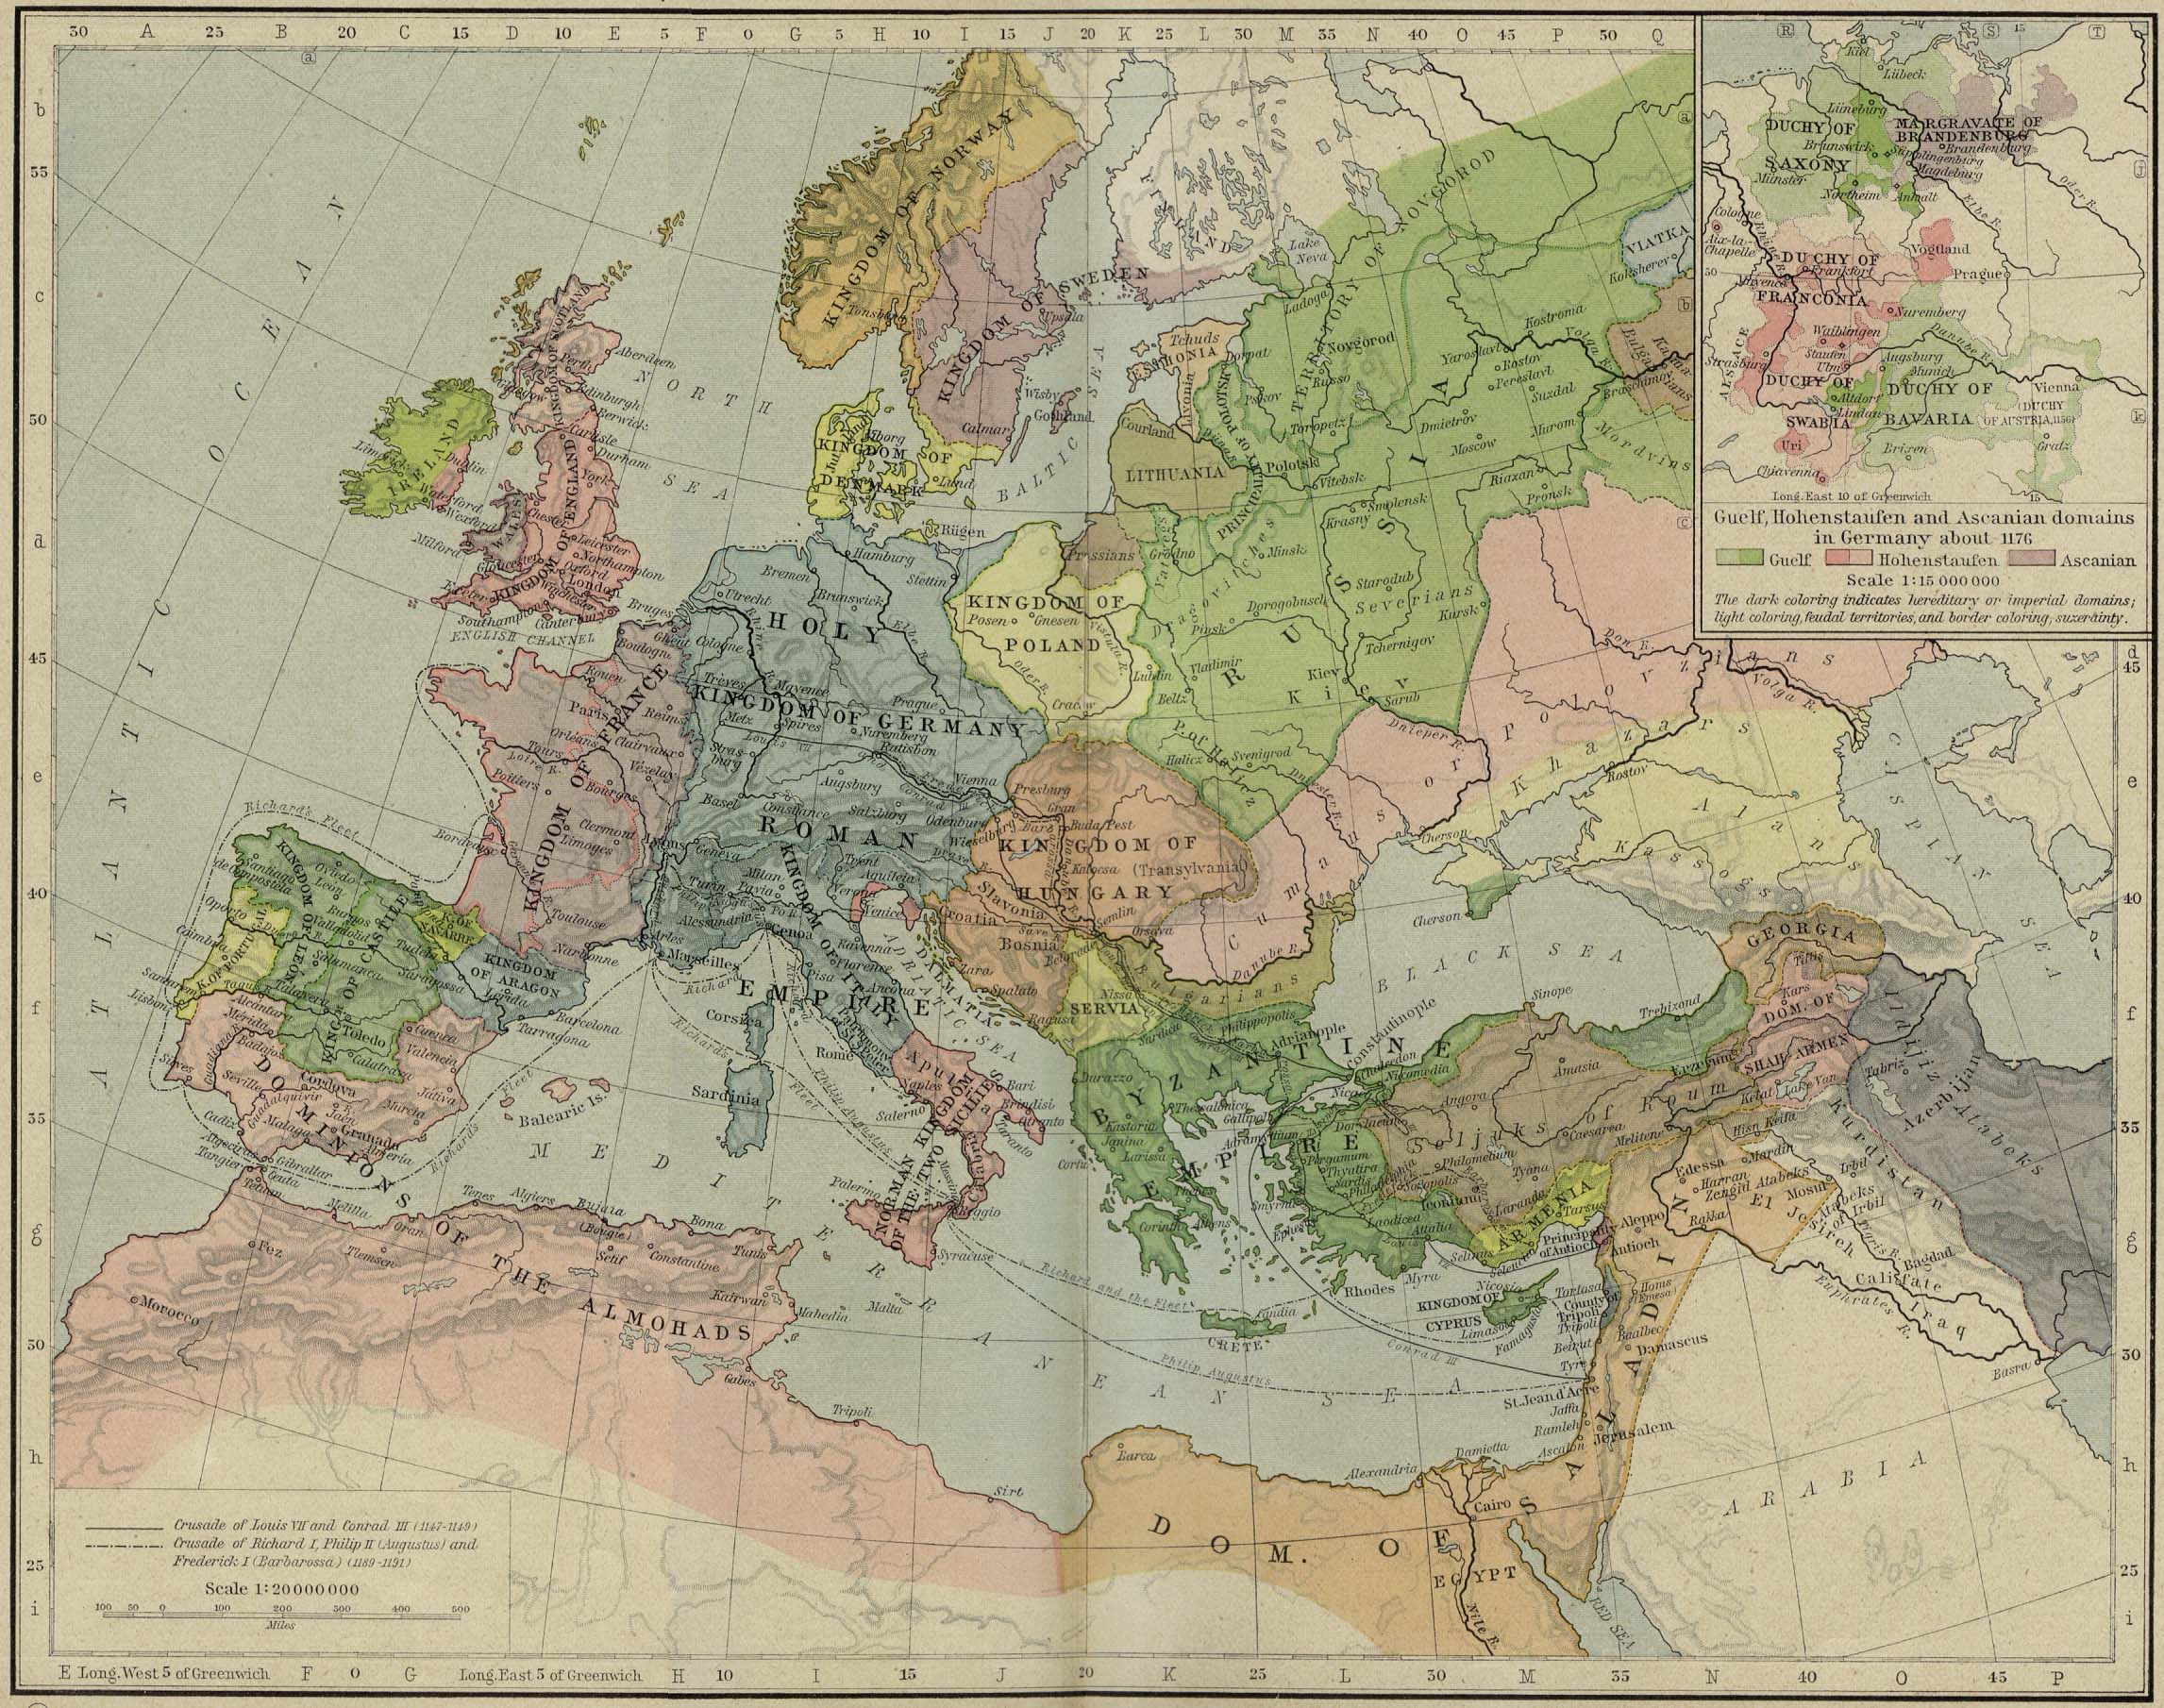 Europe and the Mediterranean lands about 1190